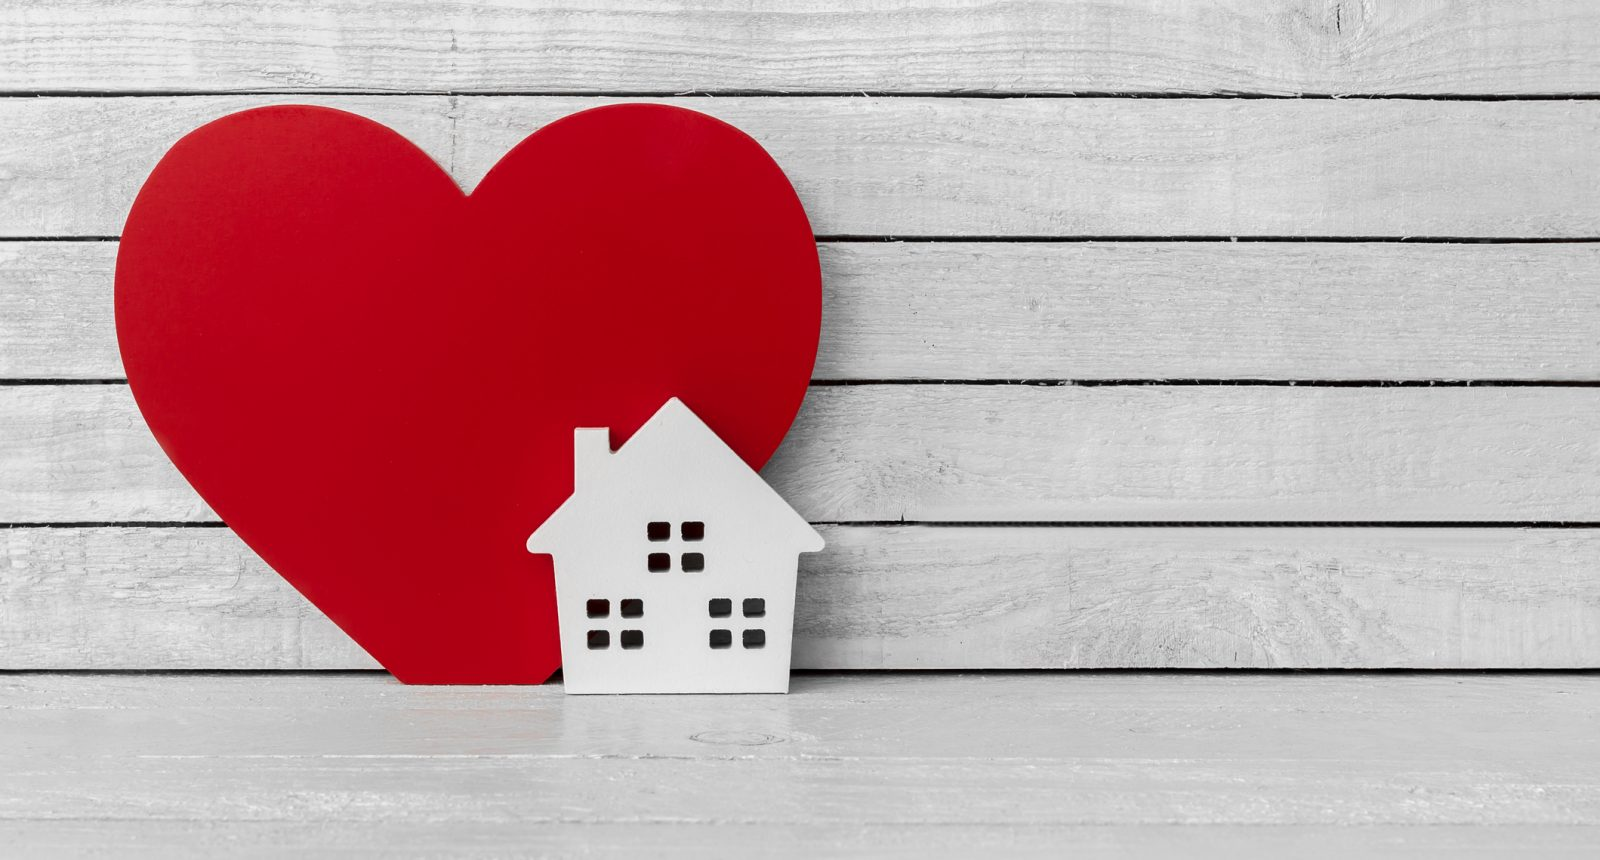 Heart and home shaped cut out together